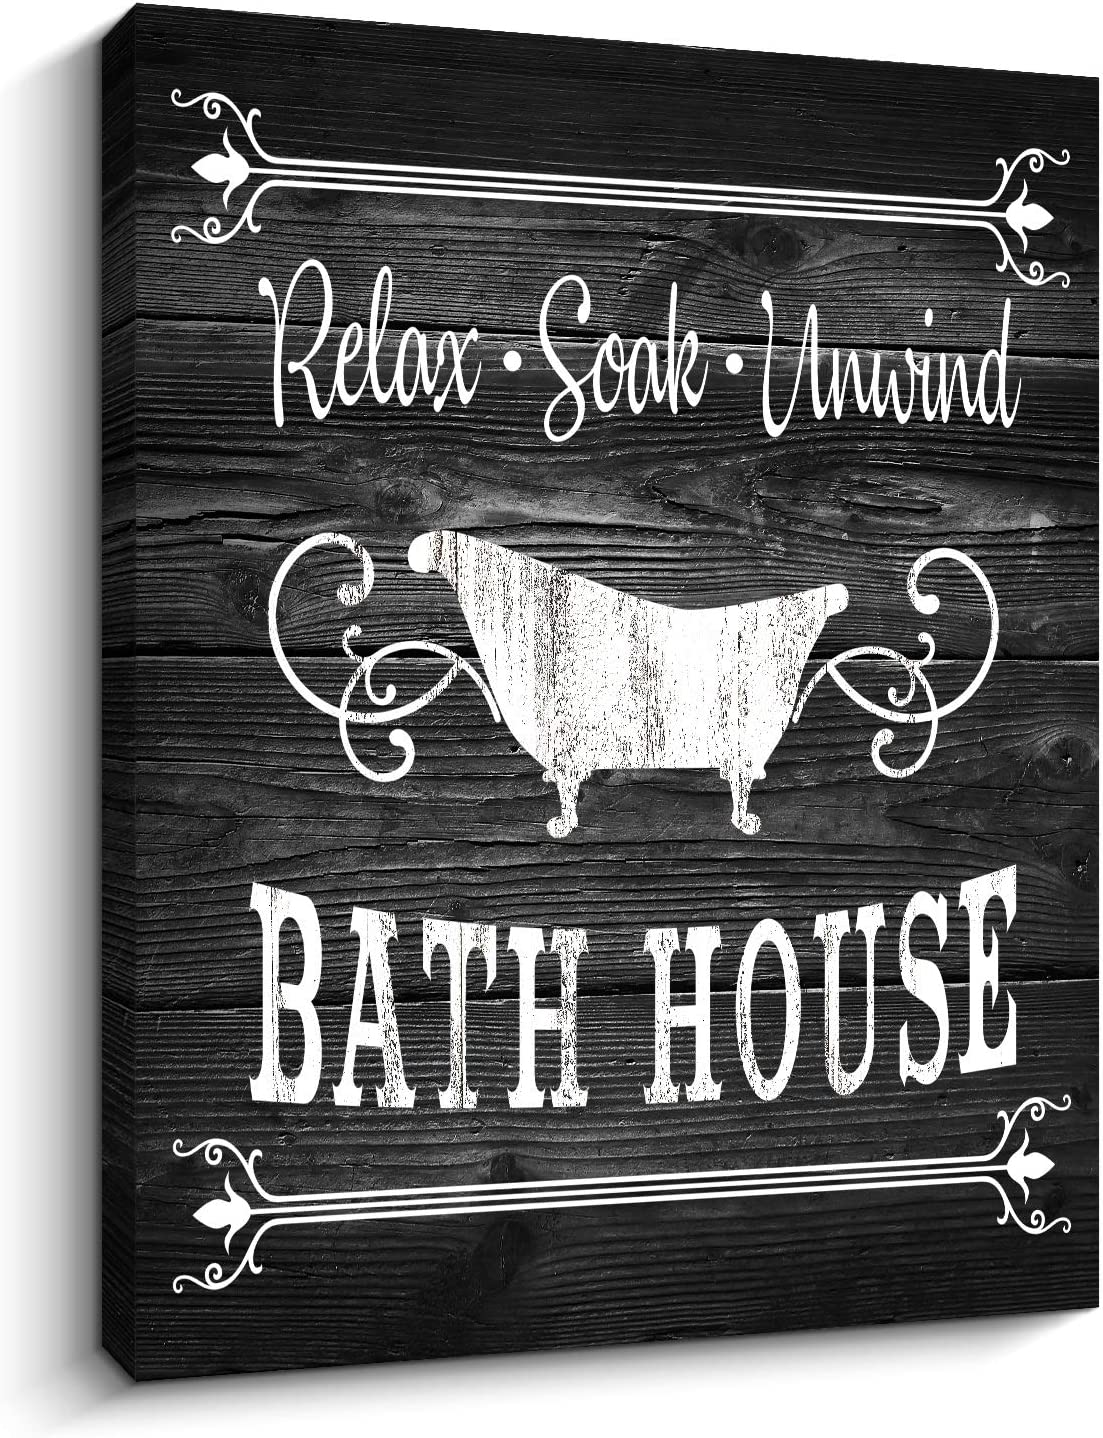 "Bathroom Rules Sign Vintage Canvas Prints Bath Signs Wall Art Decor Rustic Laundry Room Decor for Bathroom Apartment (12"" x 16"", Bath (Black))"